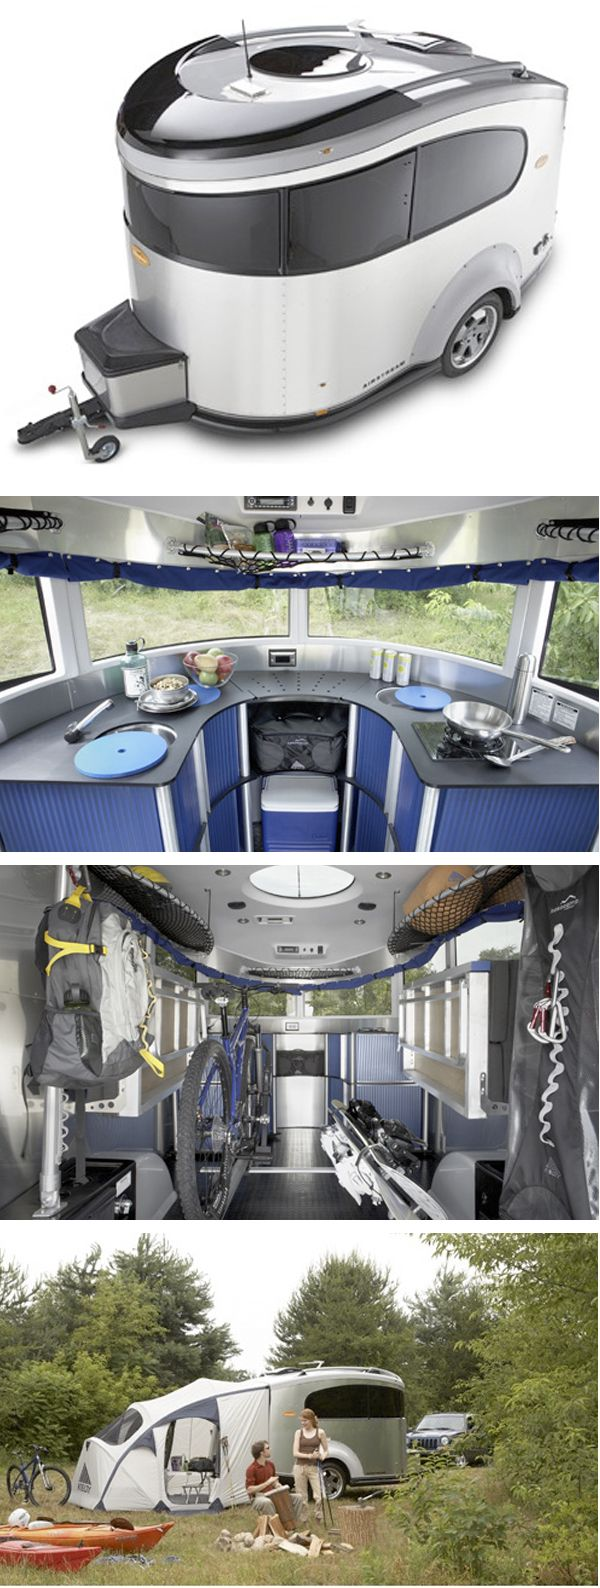 airstream basecamp re pin brought to you by agents of carinsurance at houseofinsurance in. Black Bedroom Furniture Sets. Home Design Ideas